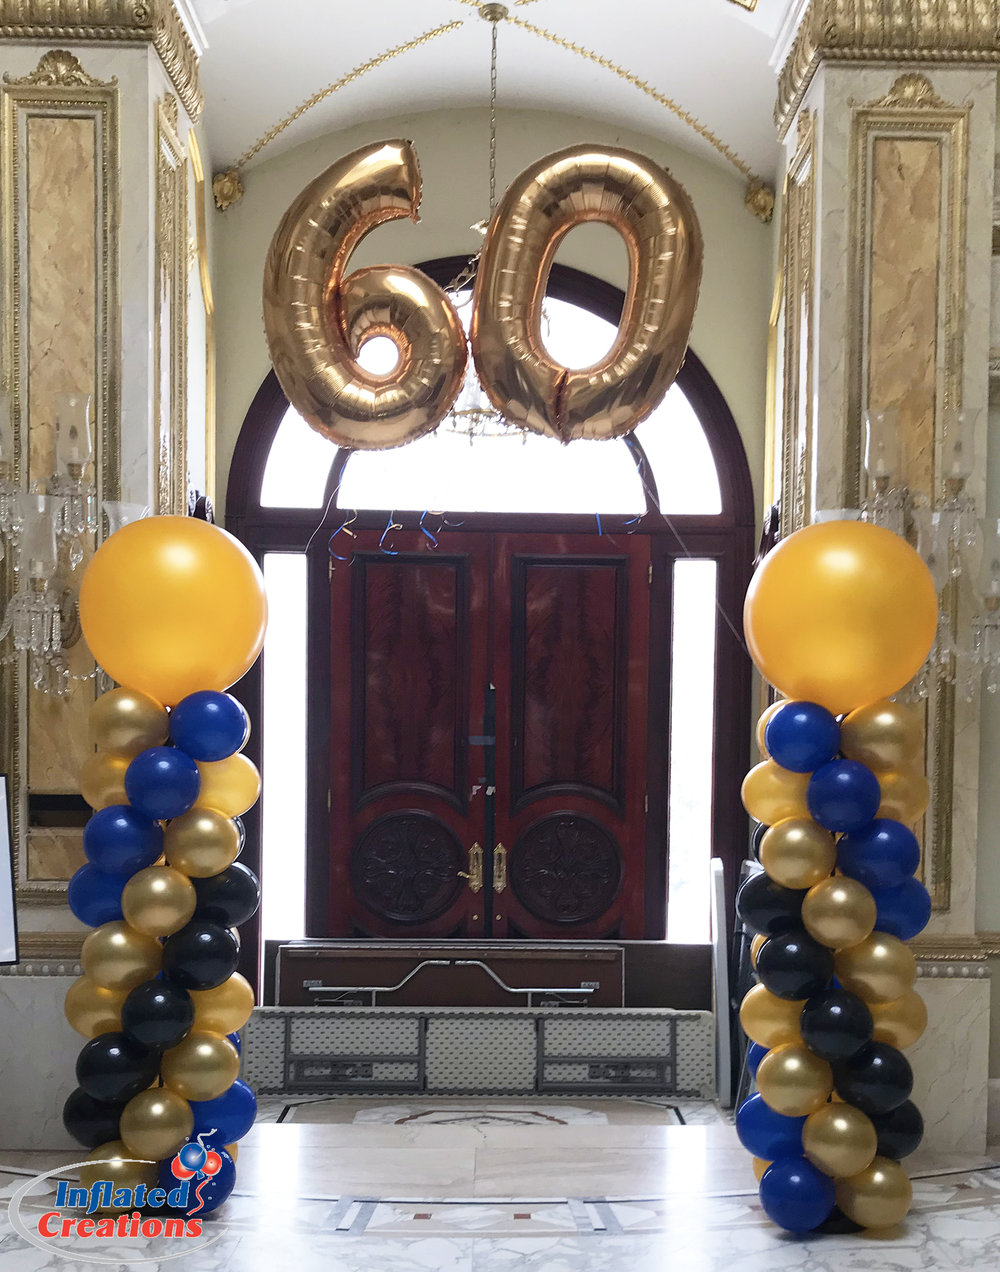 Megaloon Numbers - 60th Anniversary Balloons